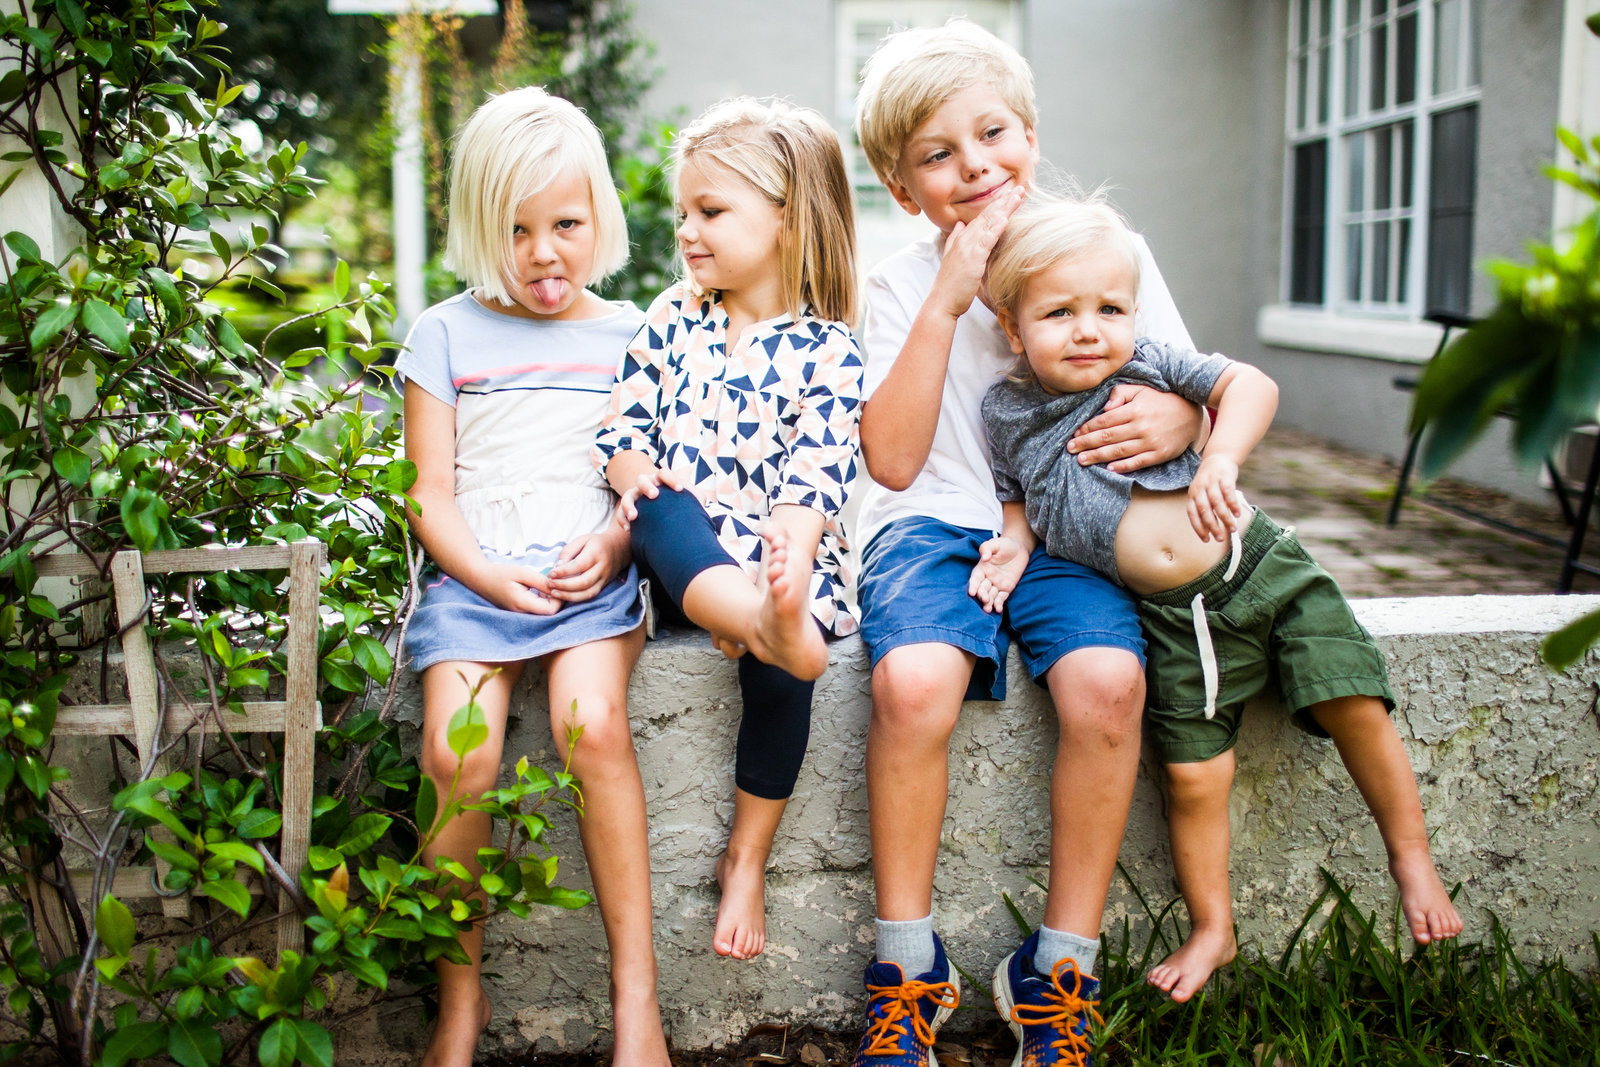 Silly and authentic family portraits of four kids